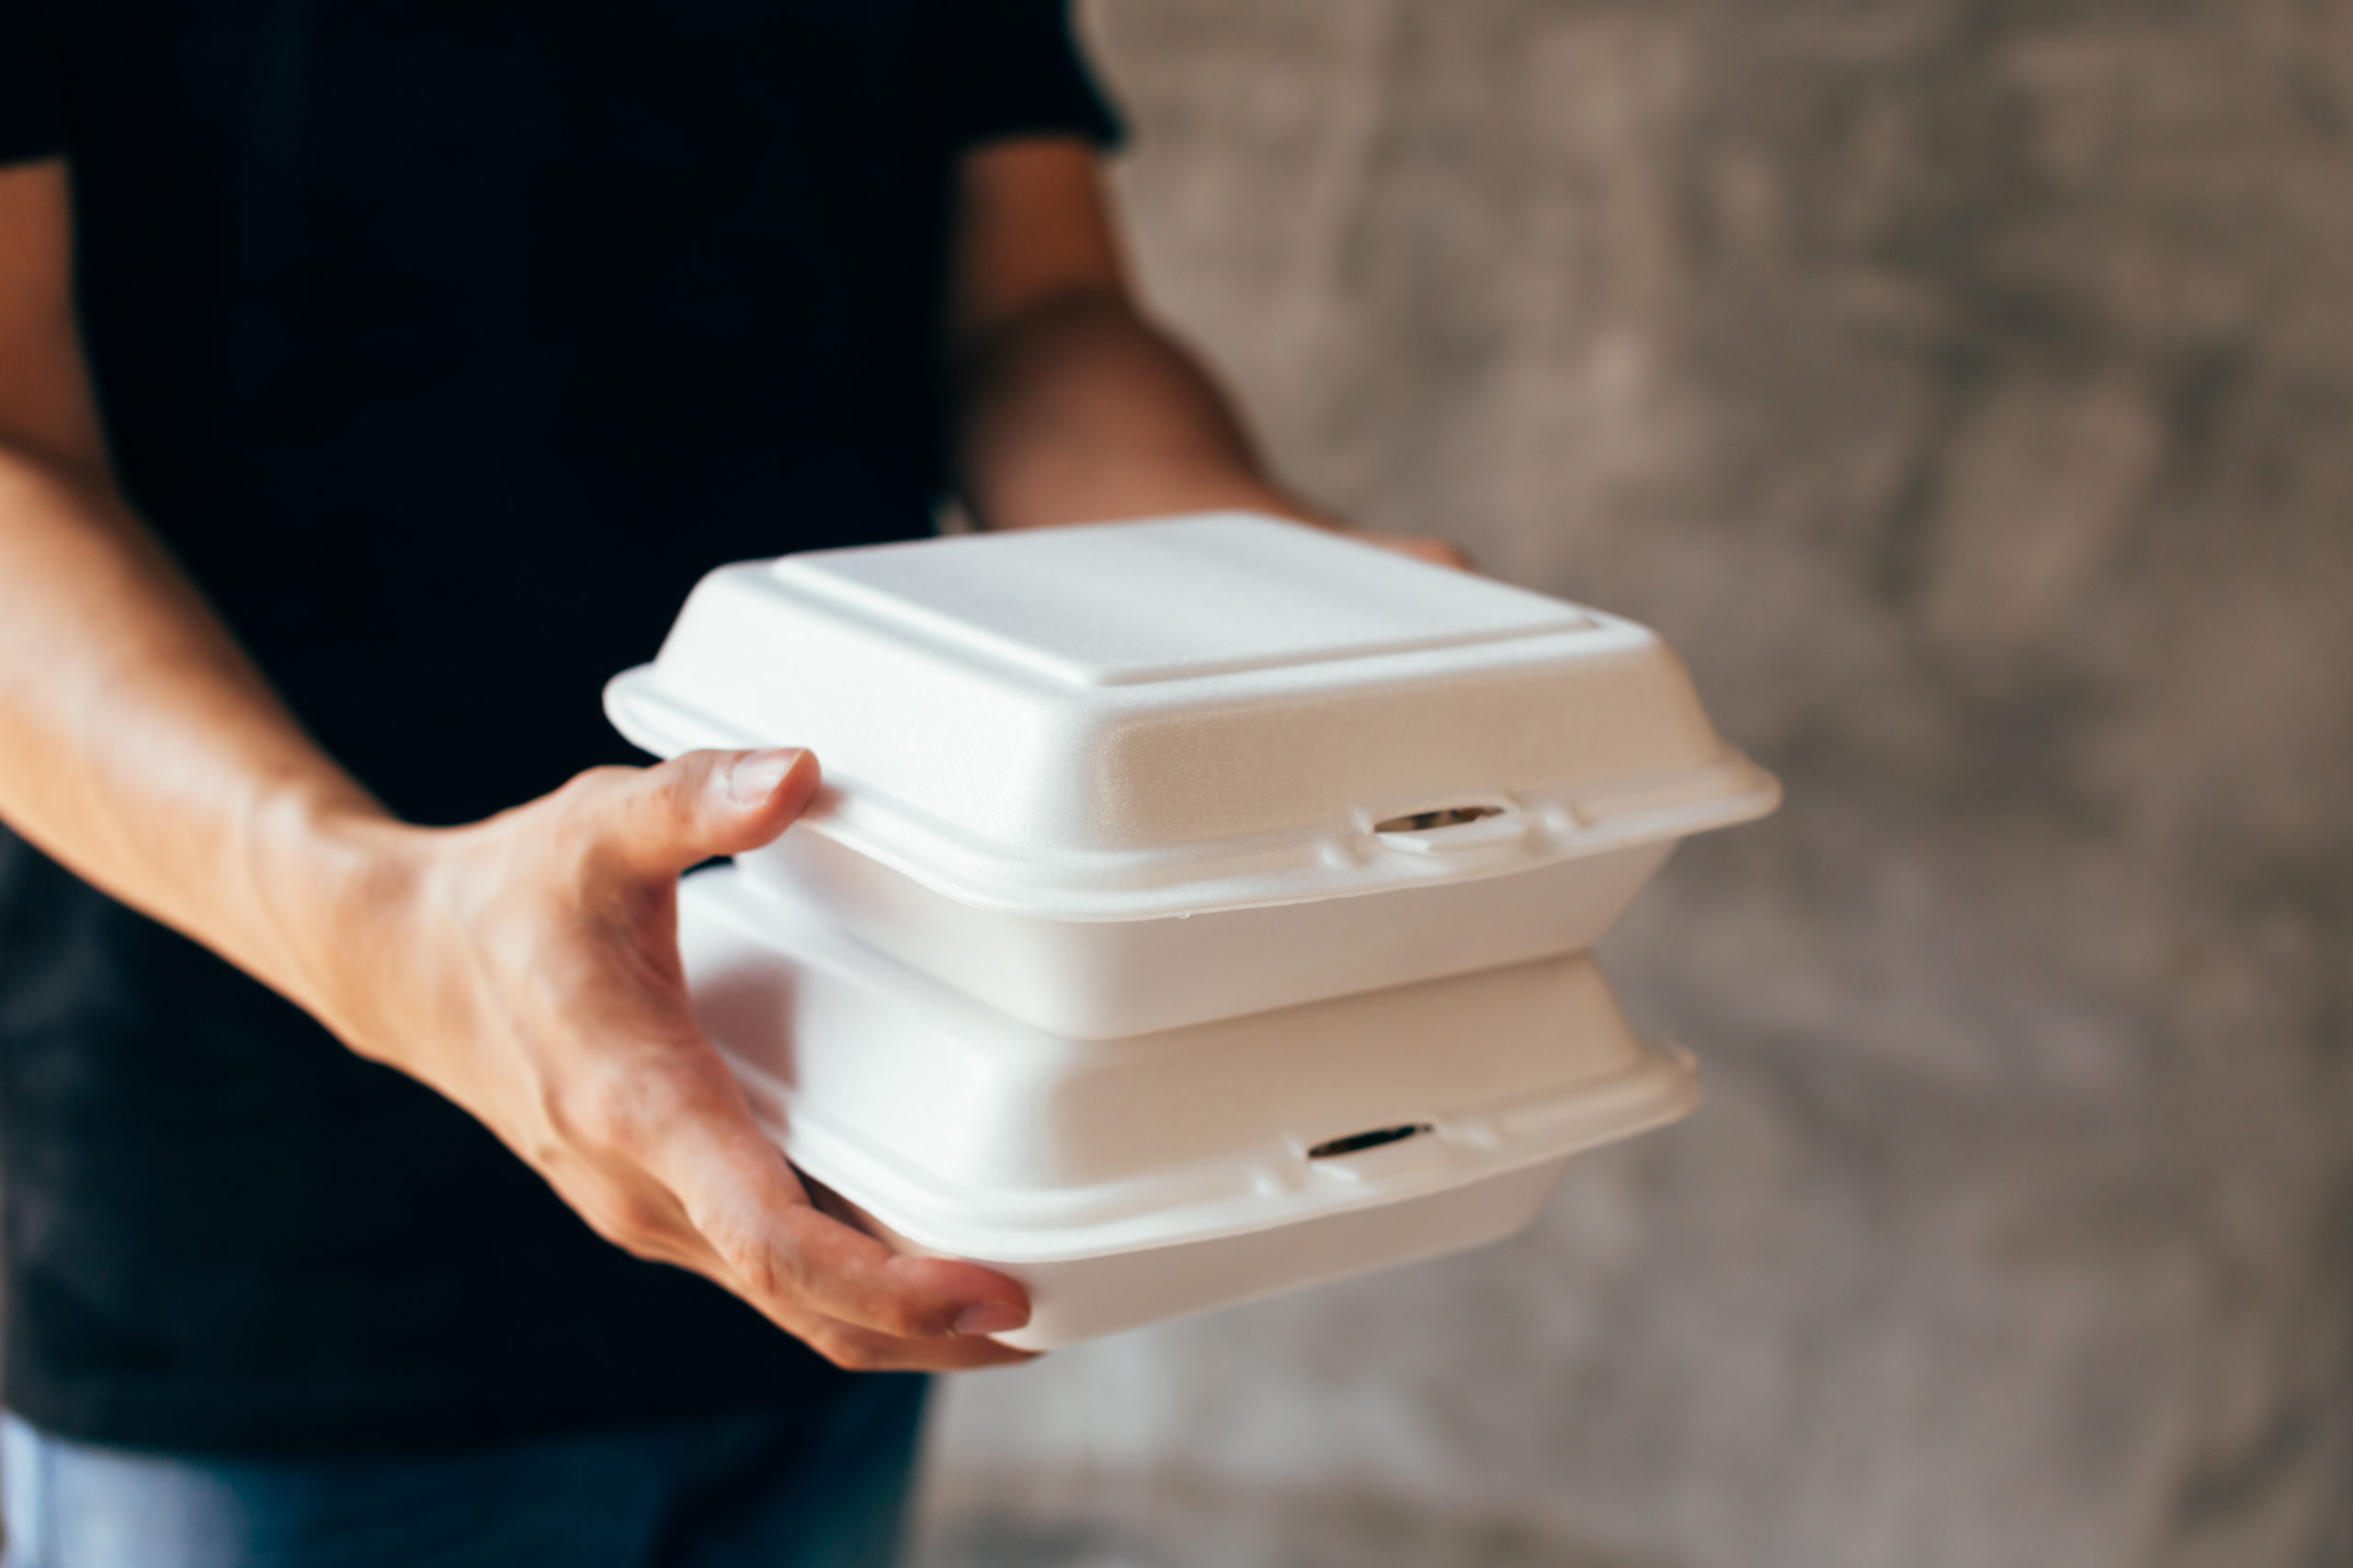 Home Meal Delivery Possible for Some Minnesota Schools